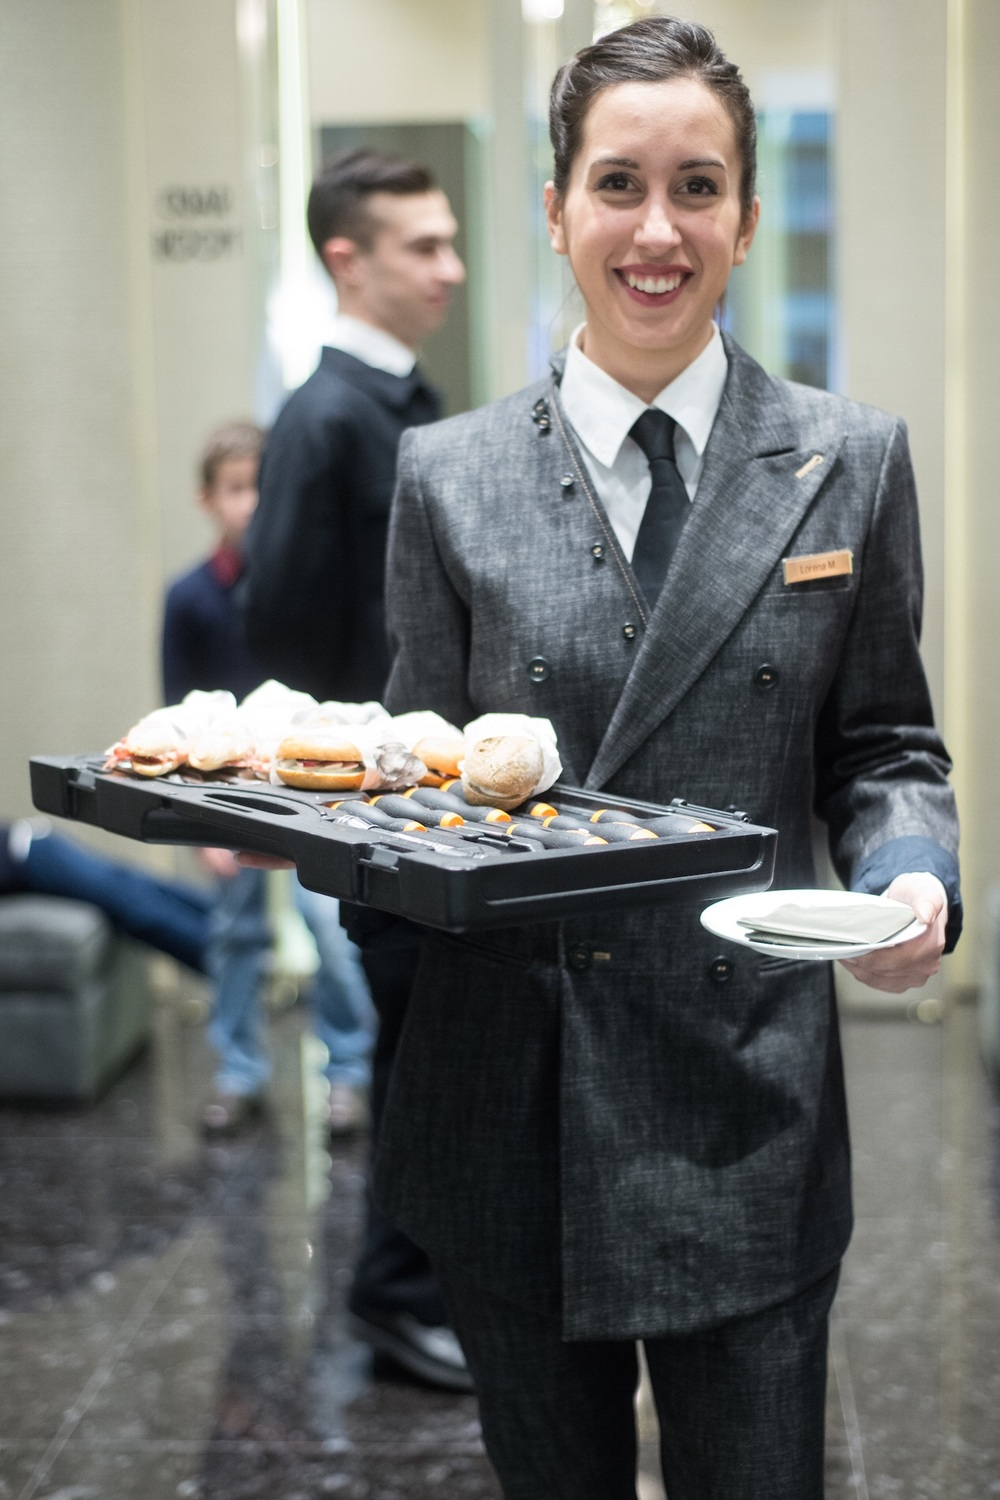 Serving delicious canapés staff in Gentucca Bini trouser suit